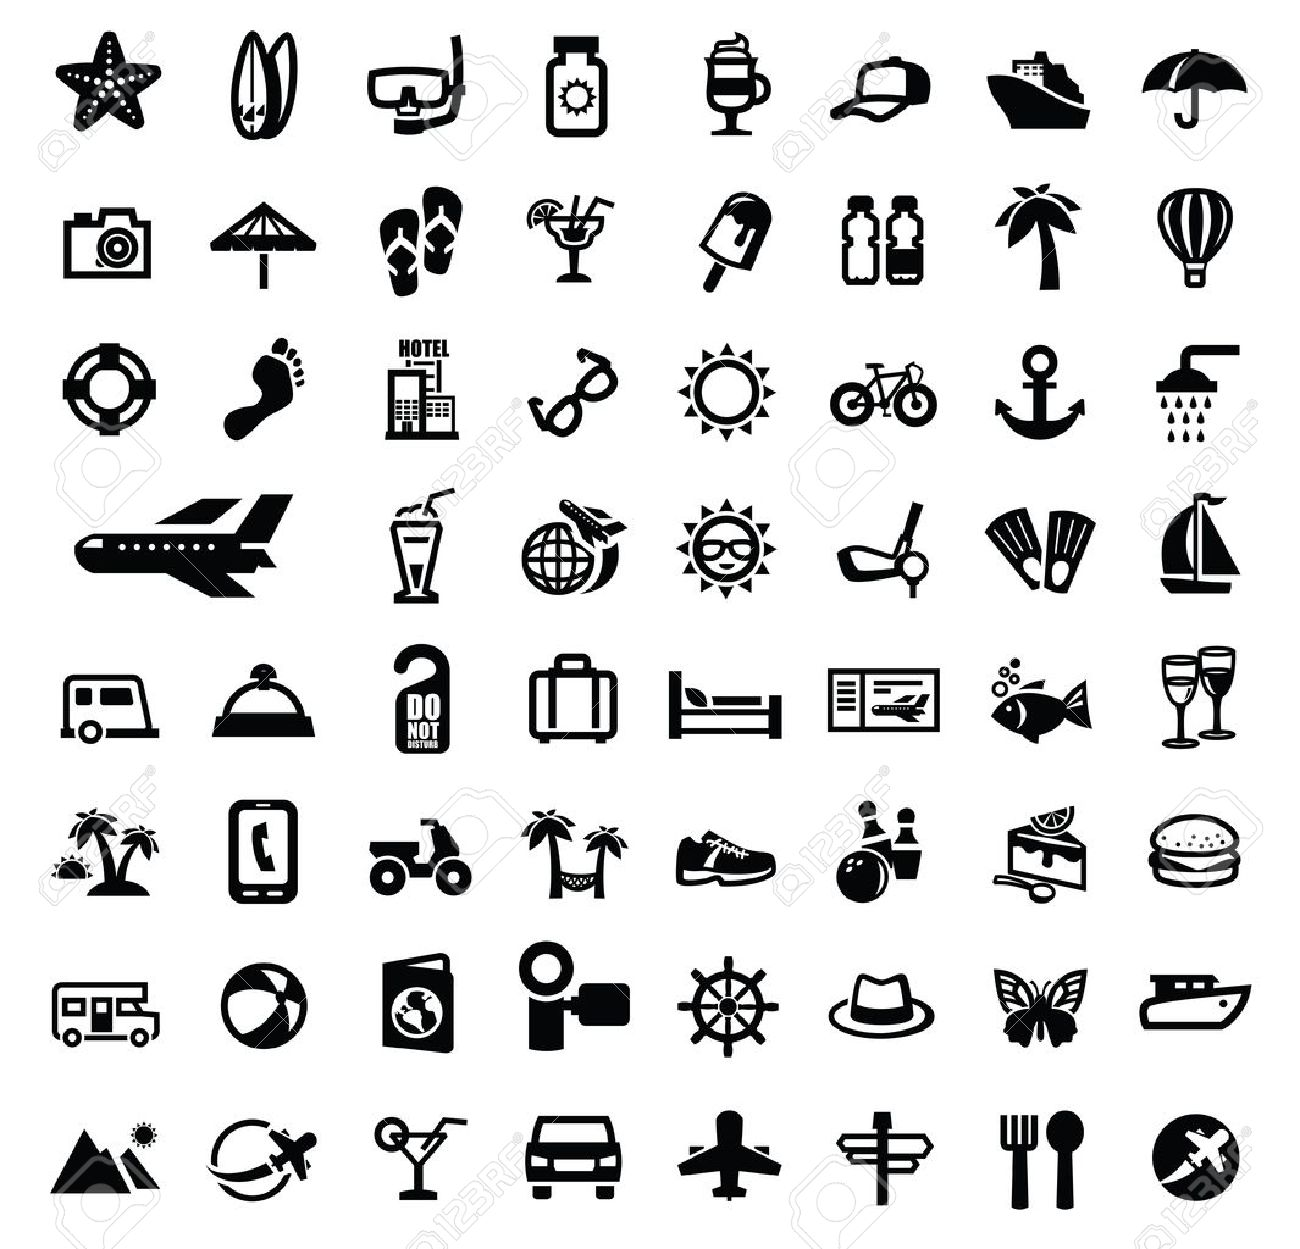 Black Travel Icon Set On White Royalty Free Cliparts Vectors And Stock Illustration Image 21998568